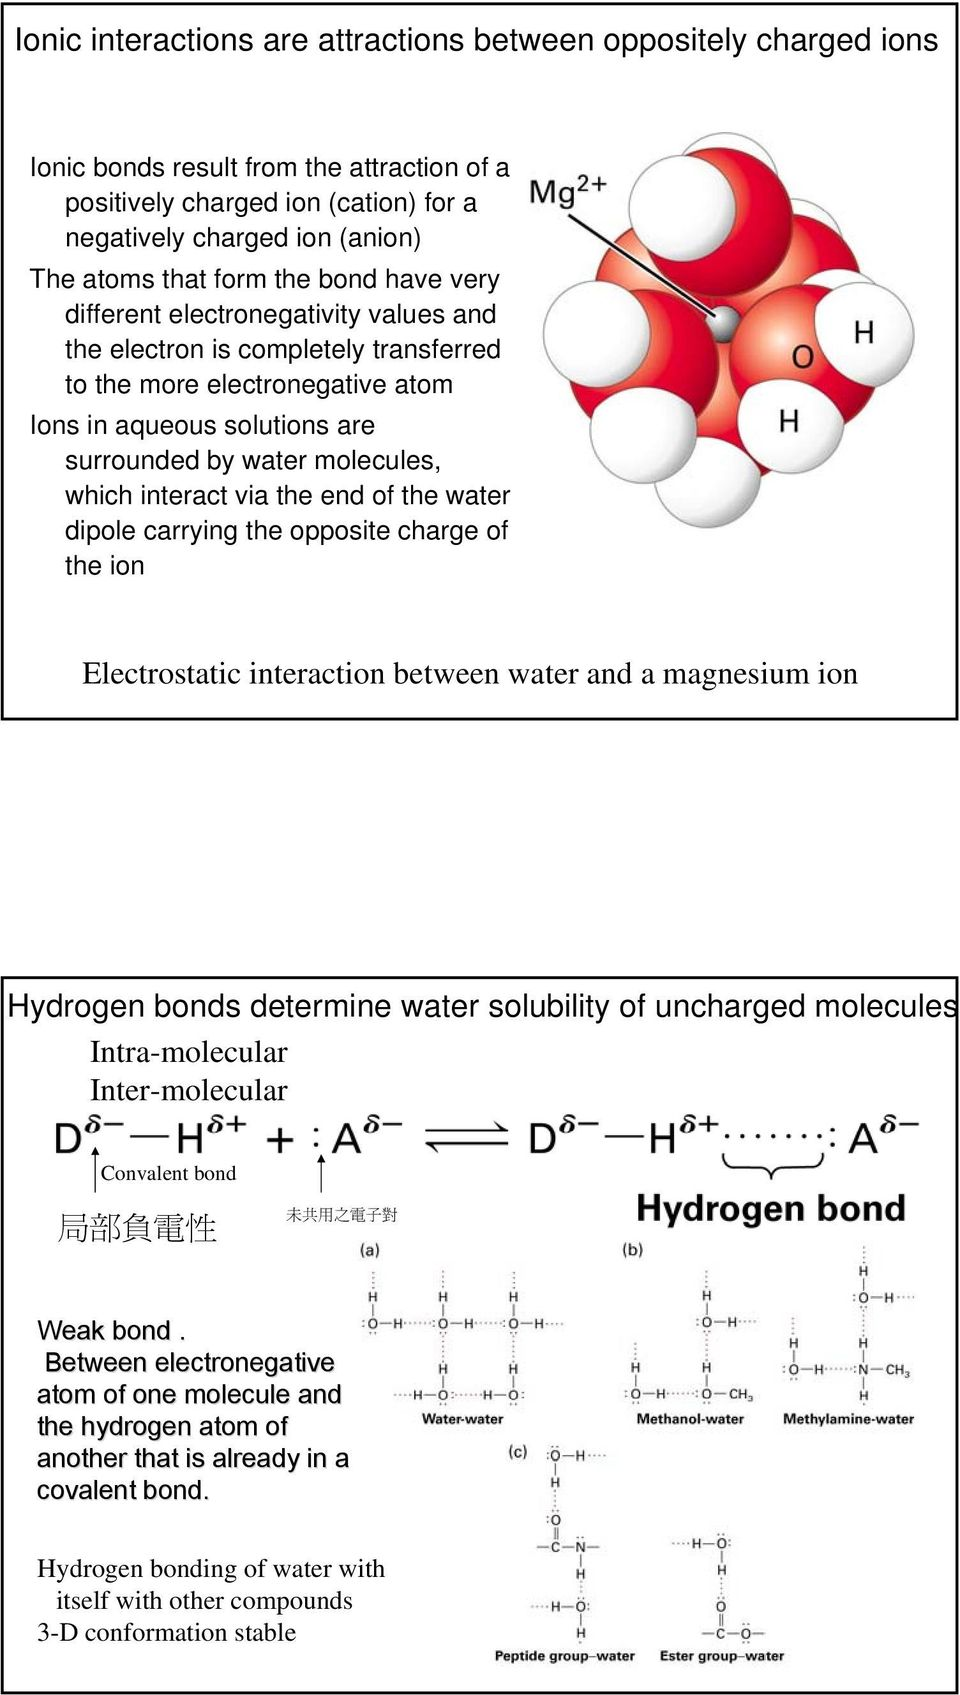 interact via the end of the water dipole carrying the opposite charge of the ion Electrostatic interaction between water and a magnesium ion Hydrogen bonds determine water solubility of uncharged